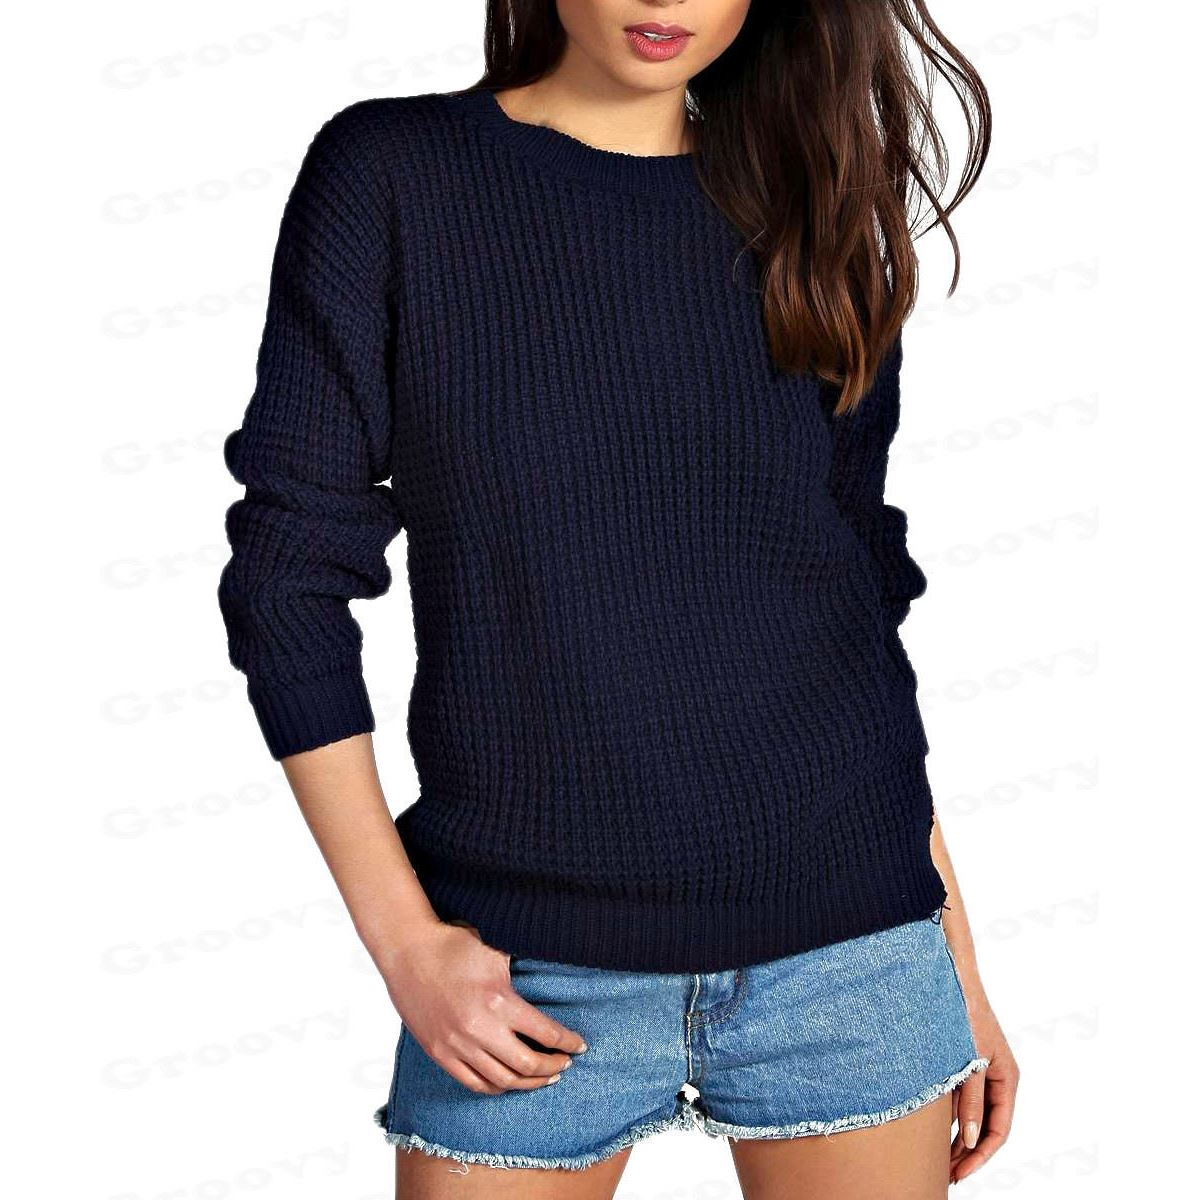 Women's Sweaters and Women's Wool Sweaters from 0549sahibi.tk At 0549sahibi.tk, we believe all weather is sweater weather, so we offer an extensive selection for every season and every style. From cable knit wool sweaters to classic women's cardigan sweaters, we have you covered.